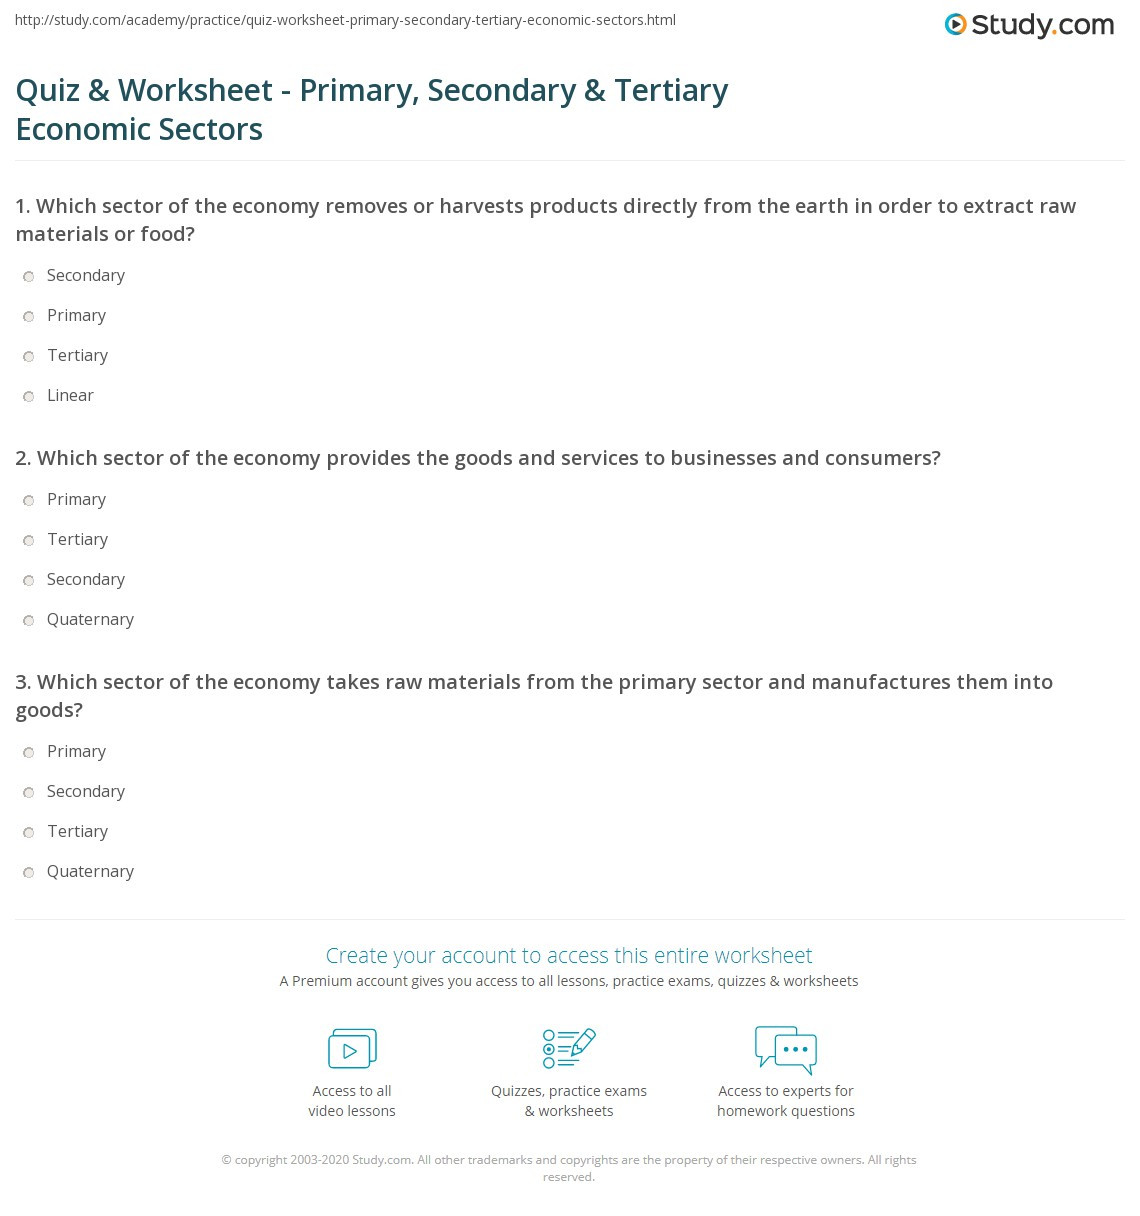 High School Economics Worksheets Quiz & Worksheet Primary Secondary & Tertiary Economic